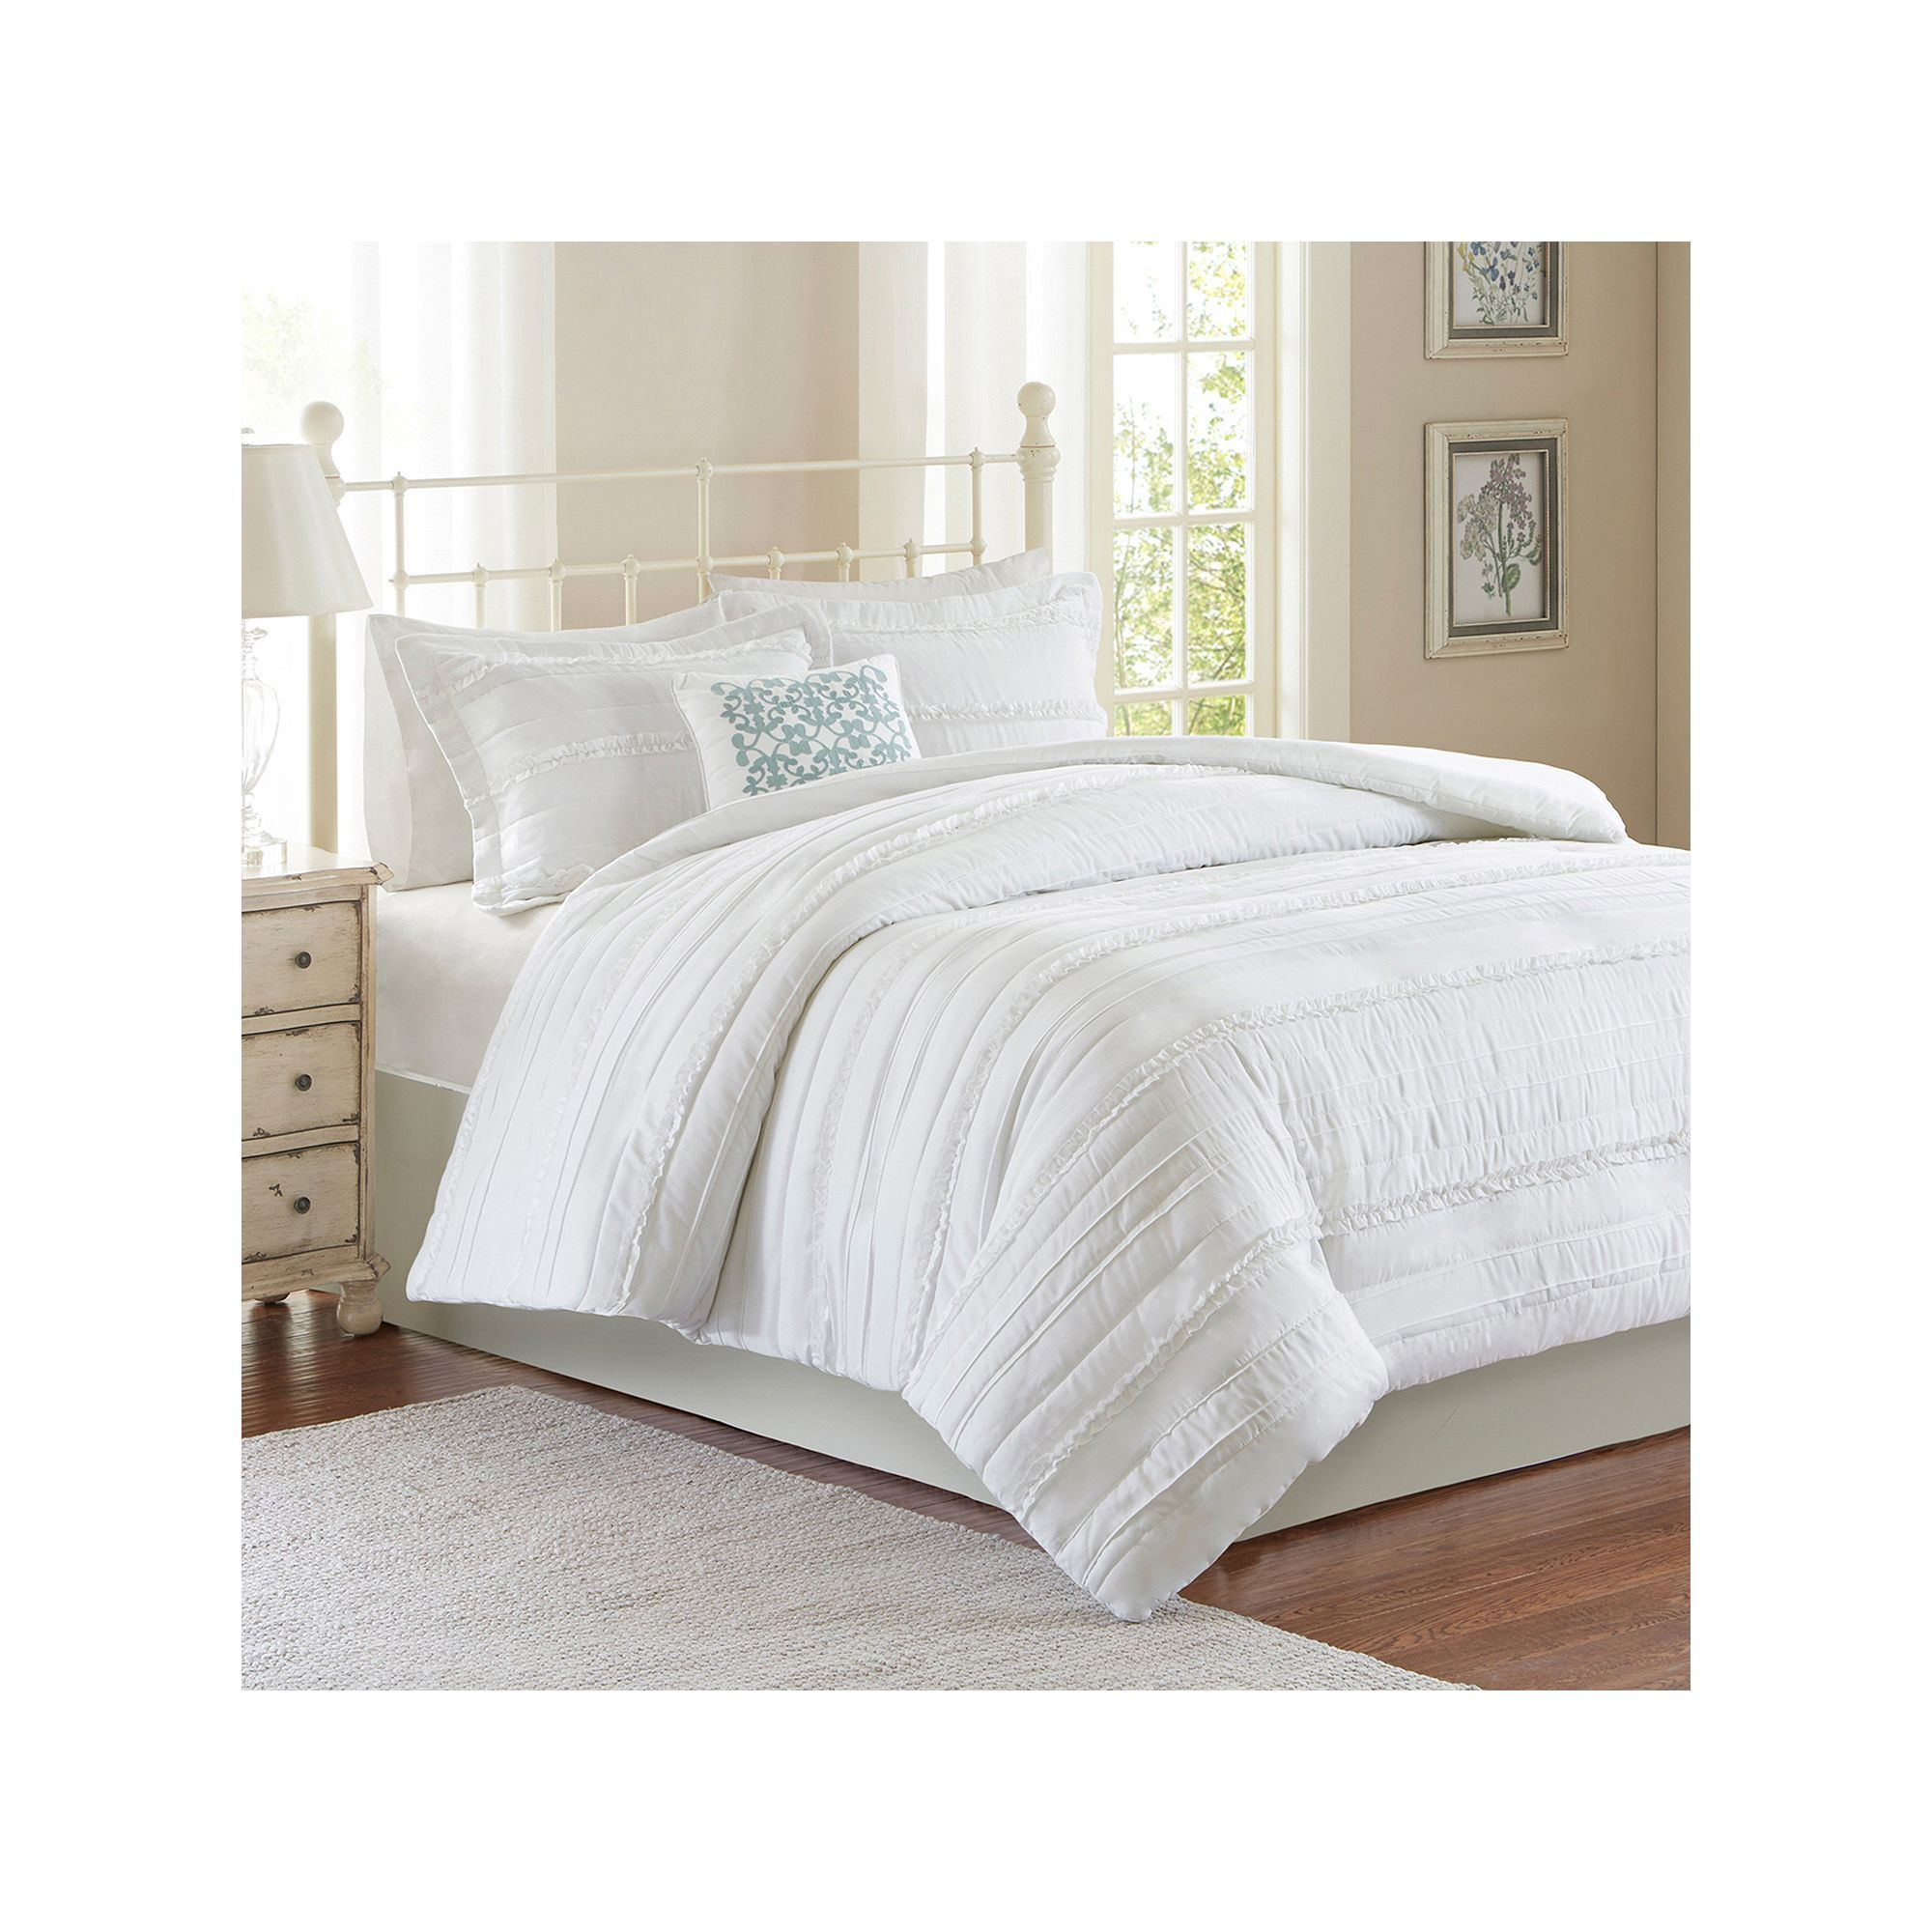 Madison Park Isabella 2 In 1 4 Piece Duvet Cover Set Shabby Chic Room Target Shabby Chic Bedding Chic Upholstery Madison park duvet cover set